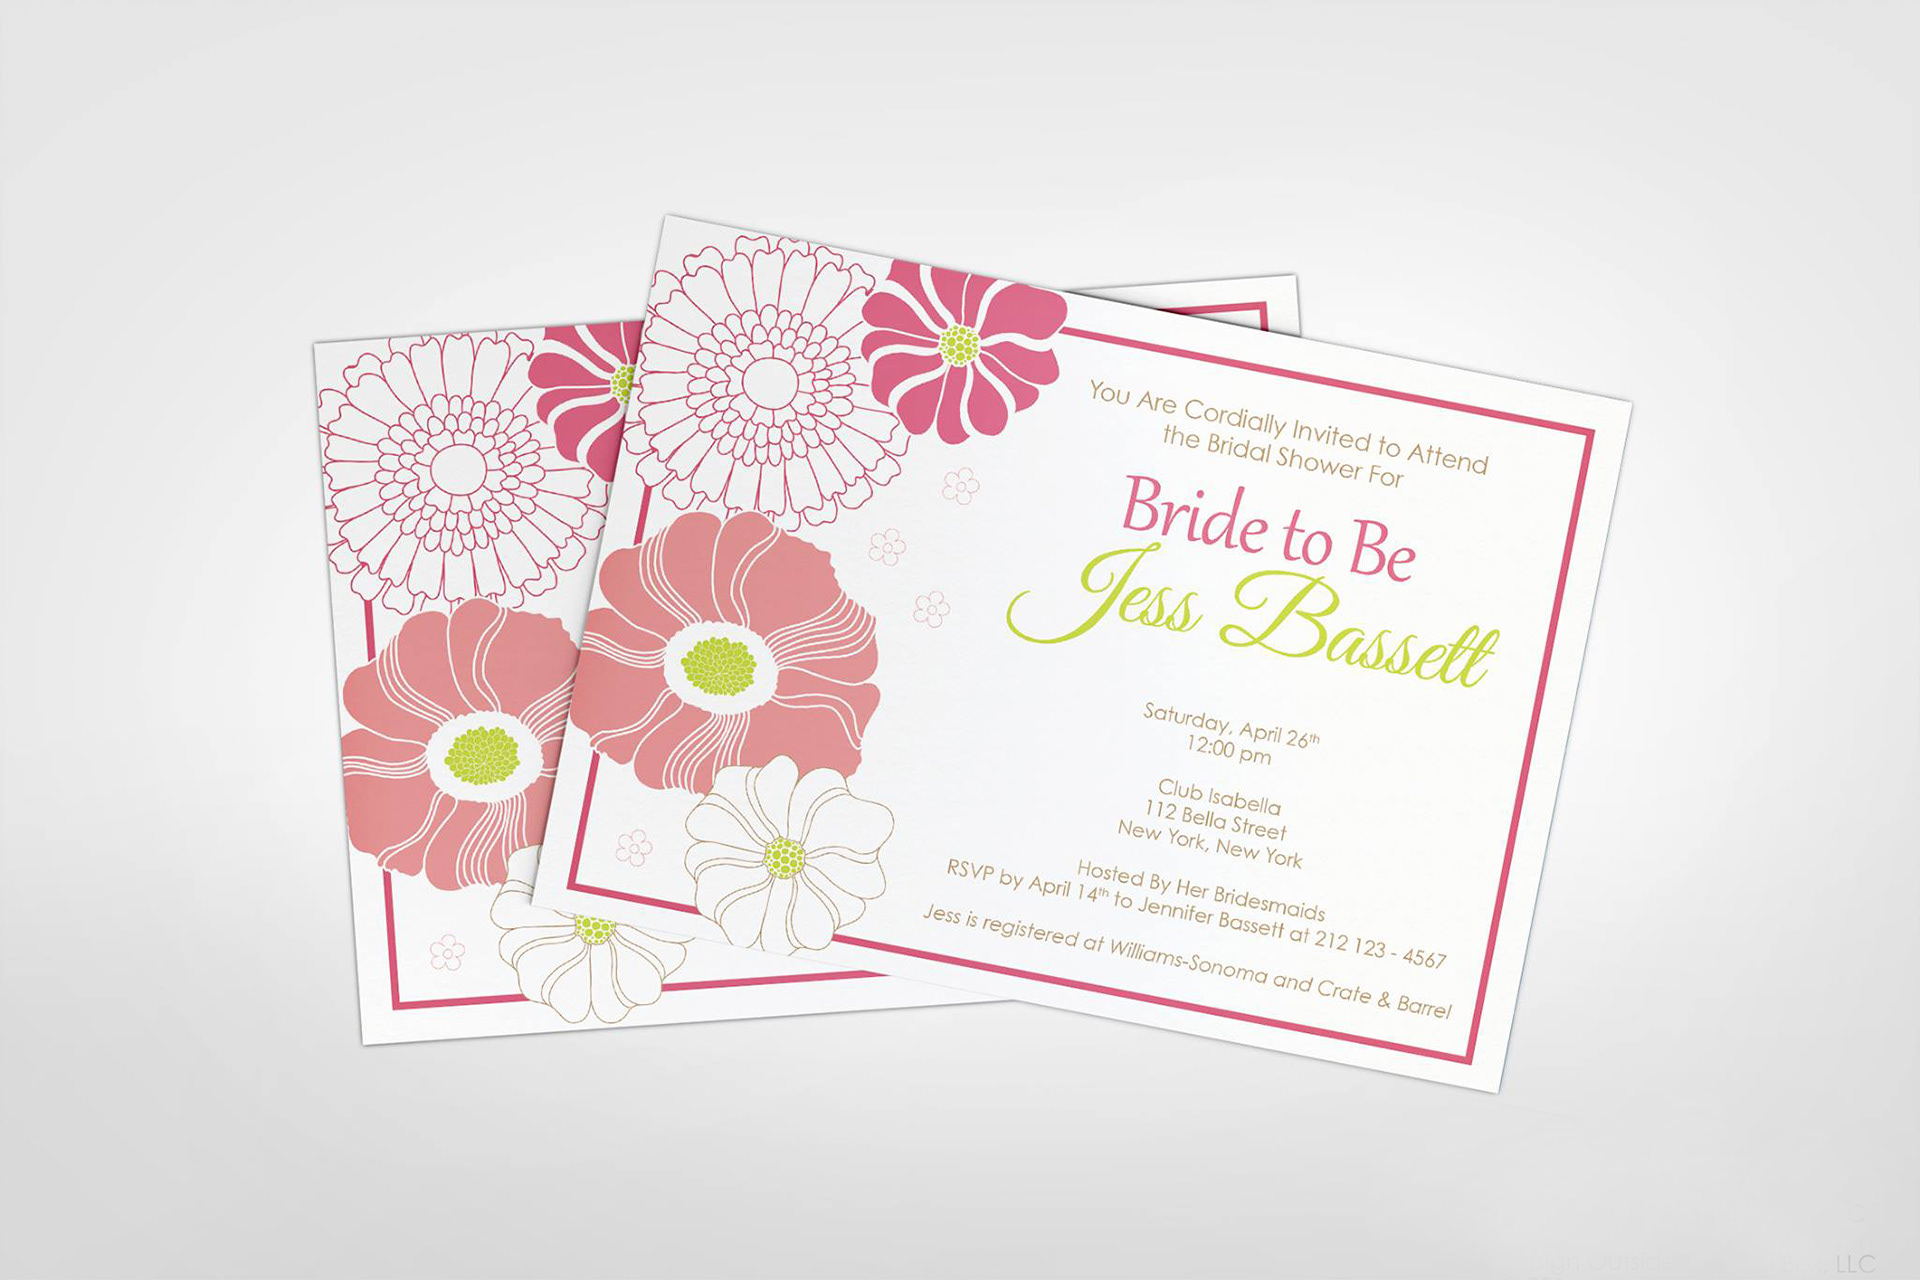 Angela Stacey - Bridal Shower | Invitation Design